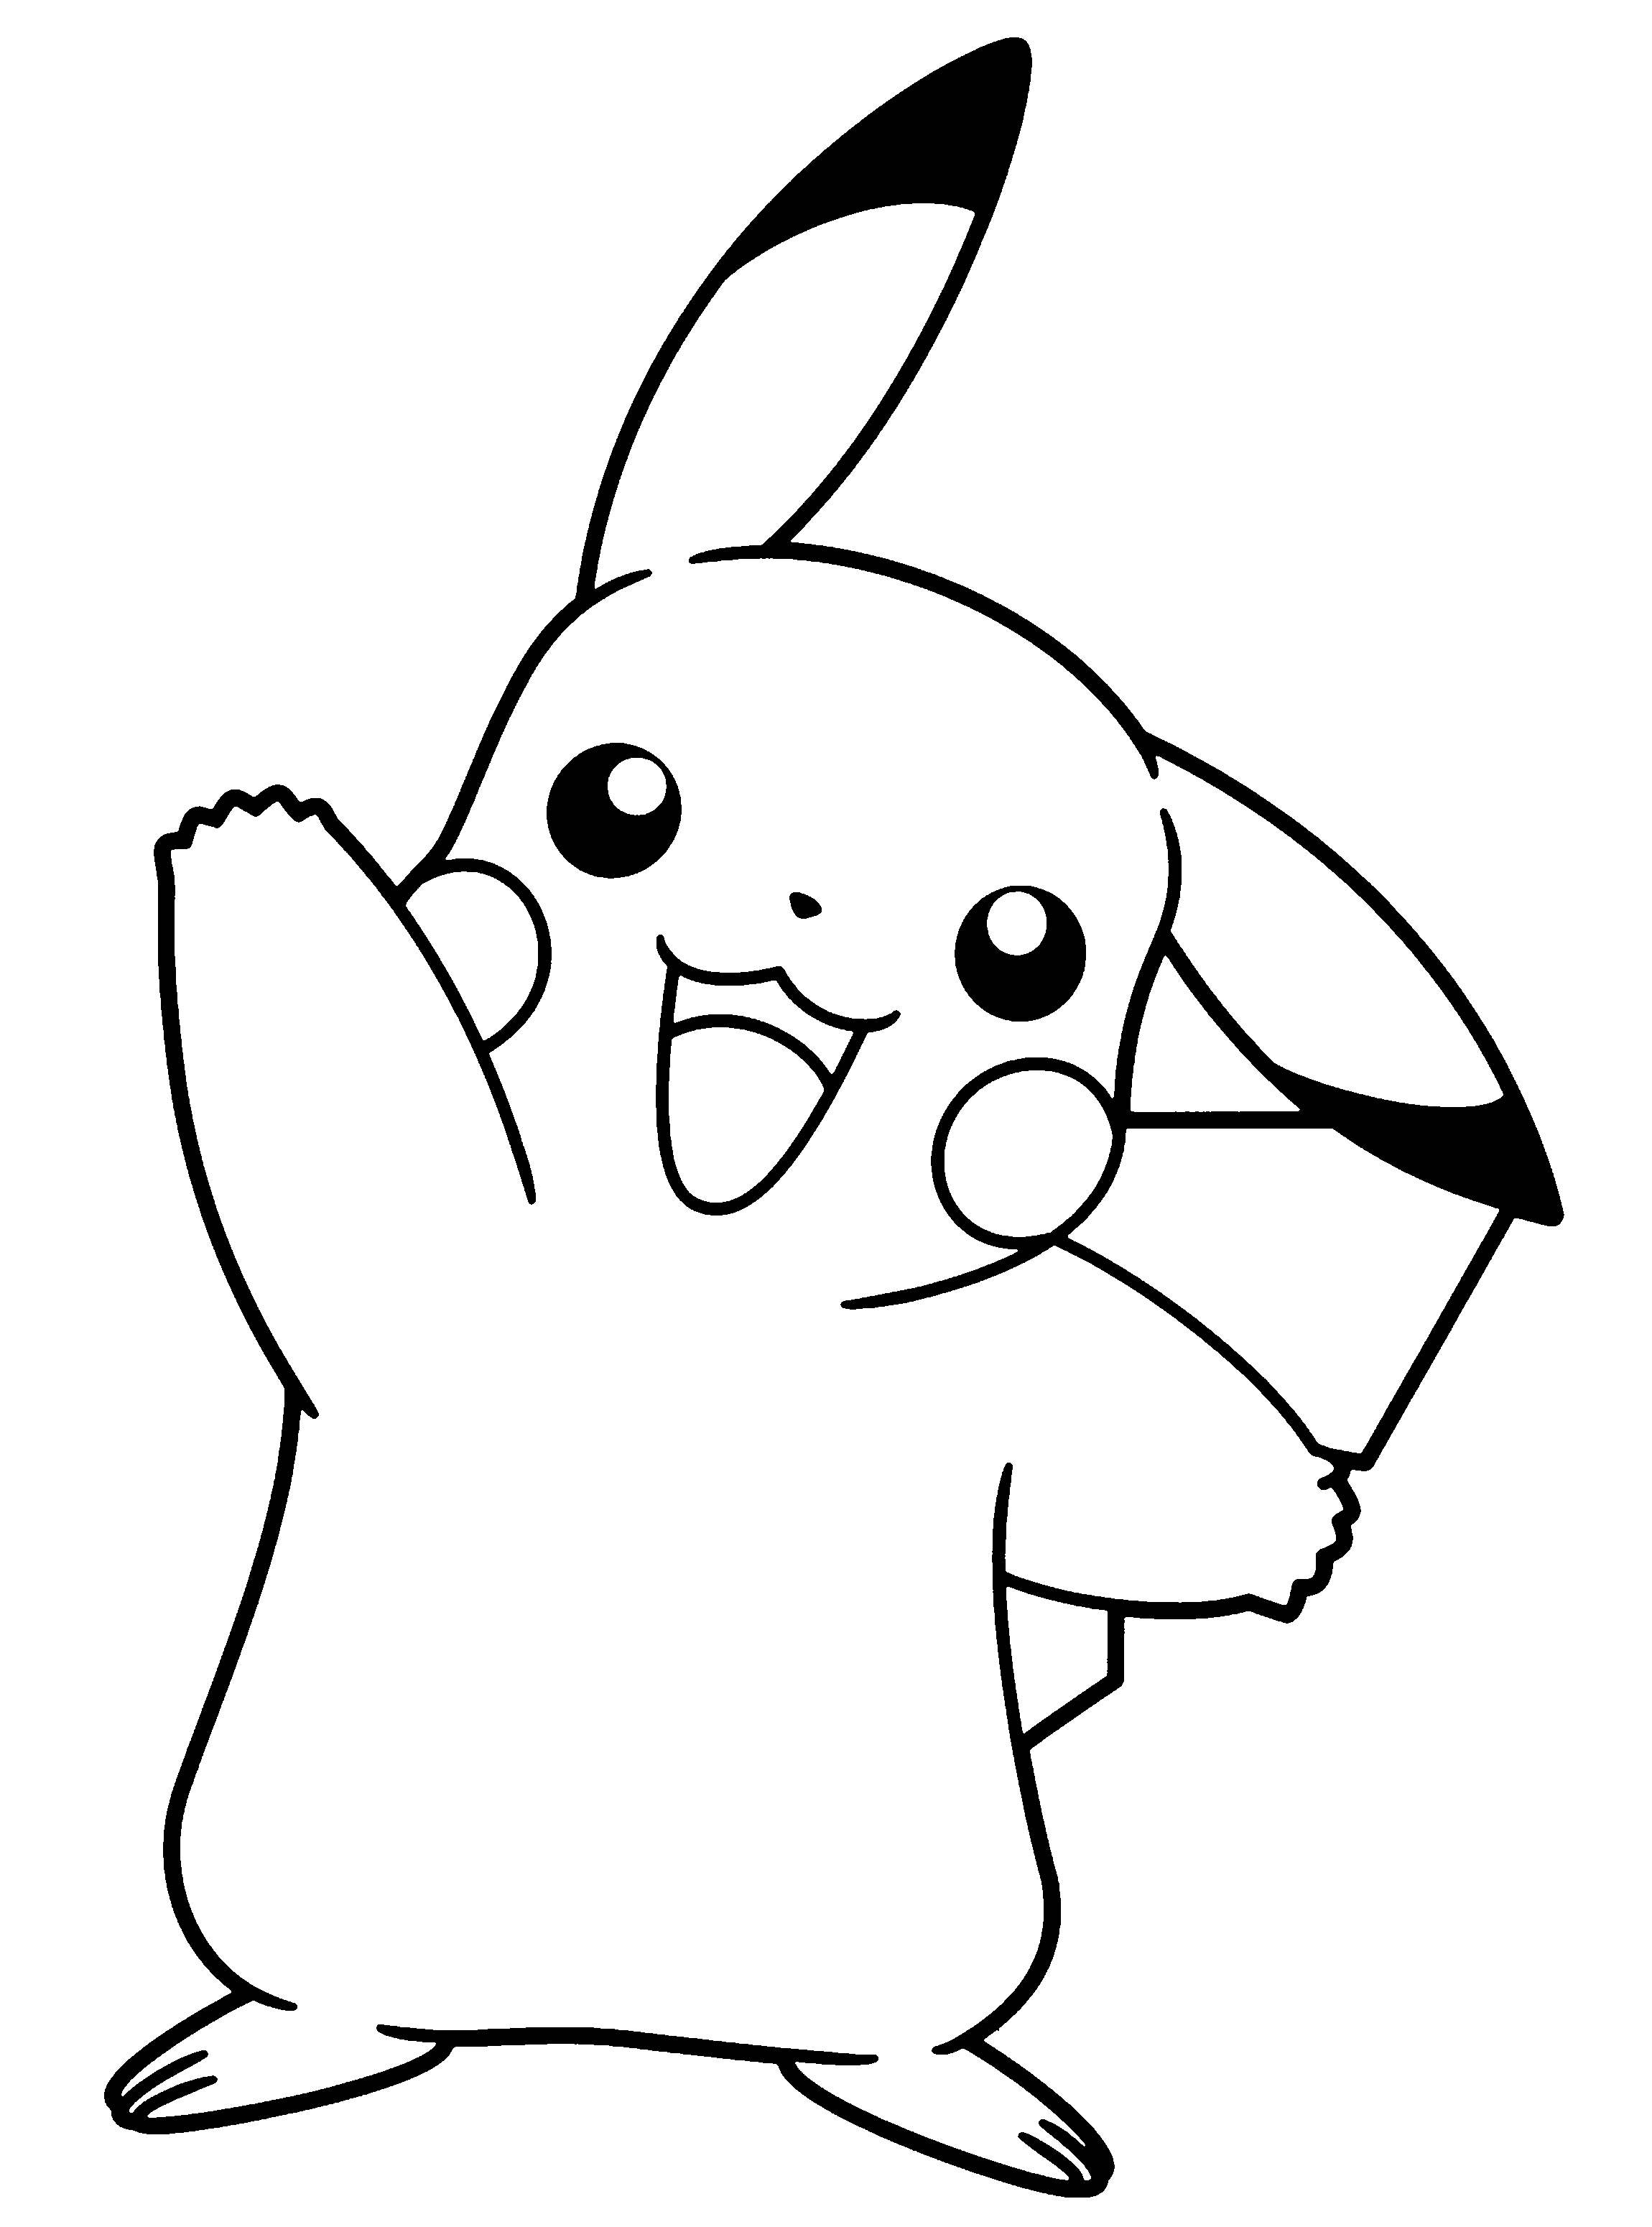 colouring pages of pokemon black and white pokemon black and white clipart clipground white pages and colouring black pokemon of